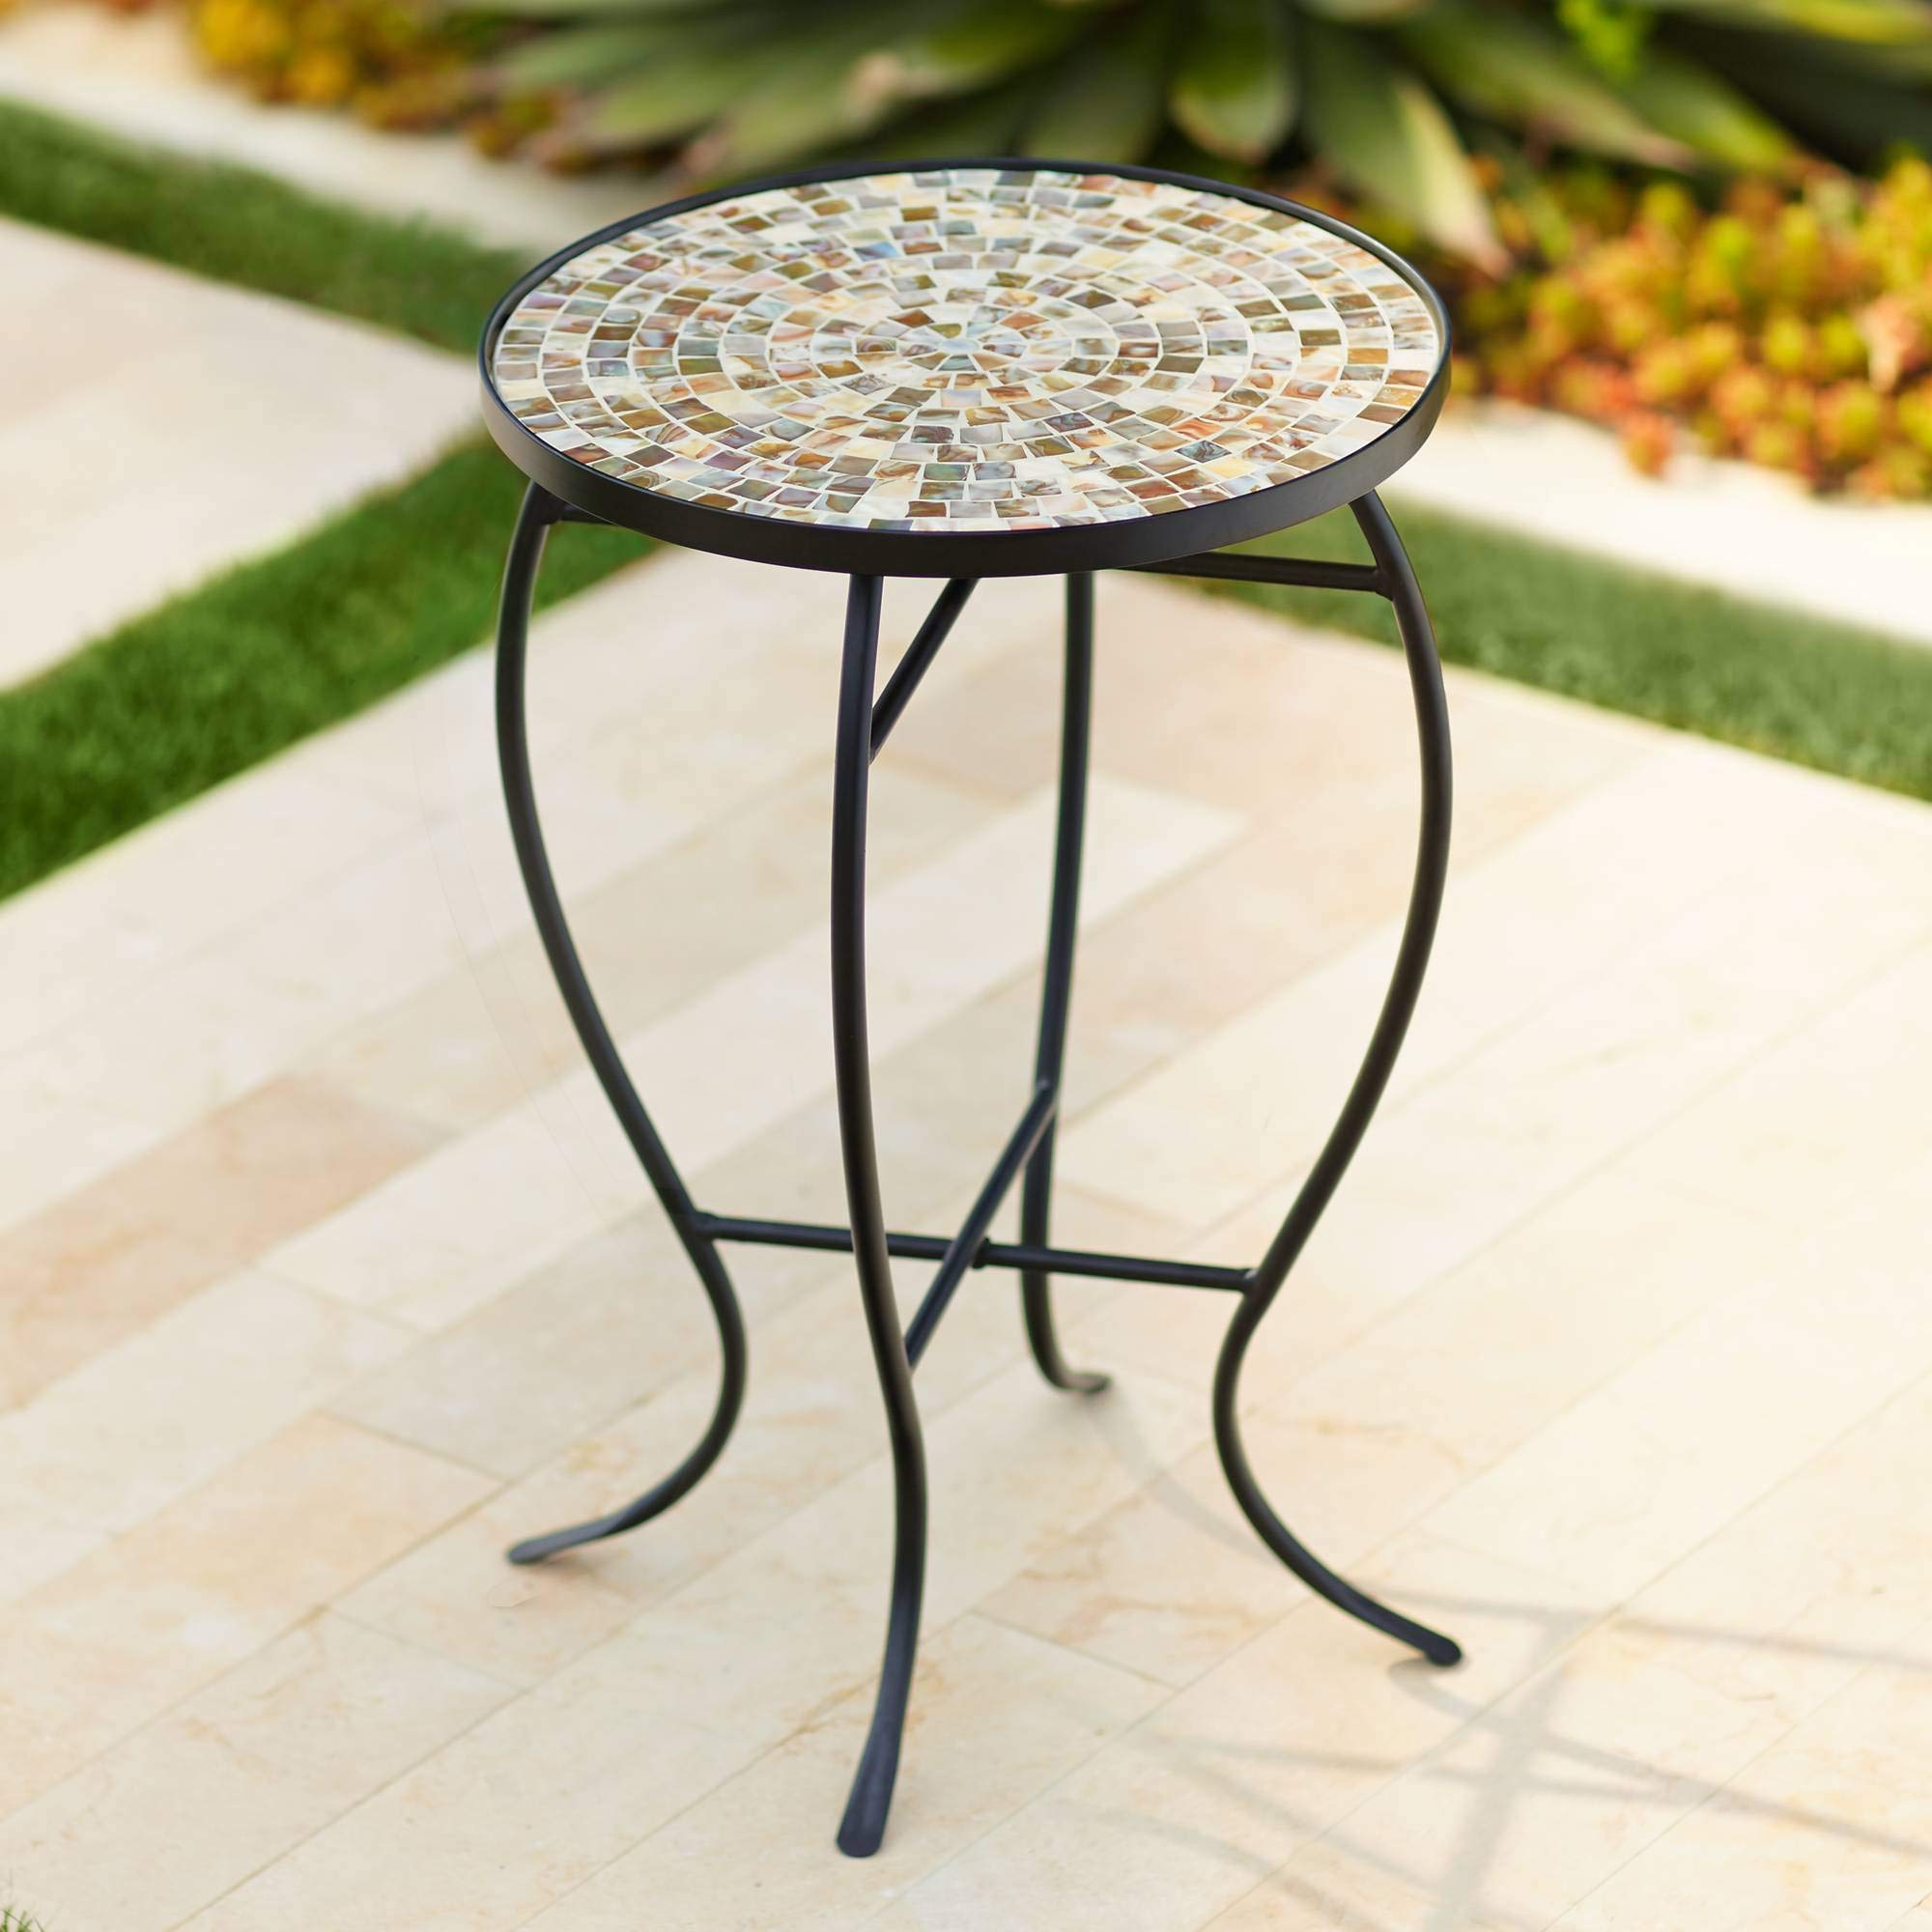 Teal Island Designs Mother of Pearl Mosaic Black Iron Outdoor Accent Table by Teal Island Designs